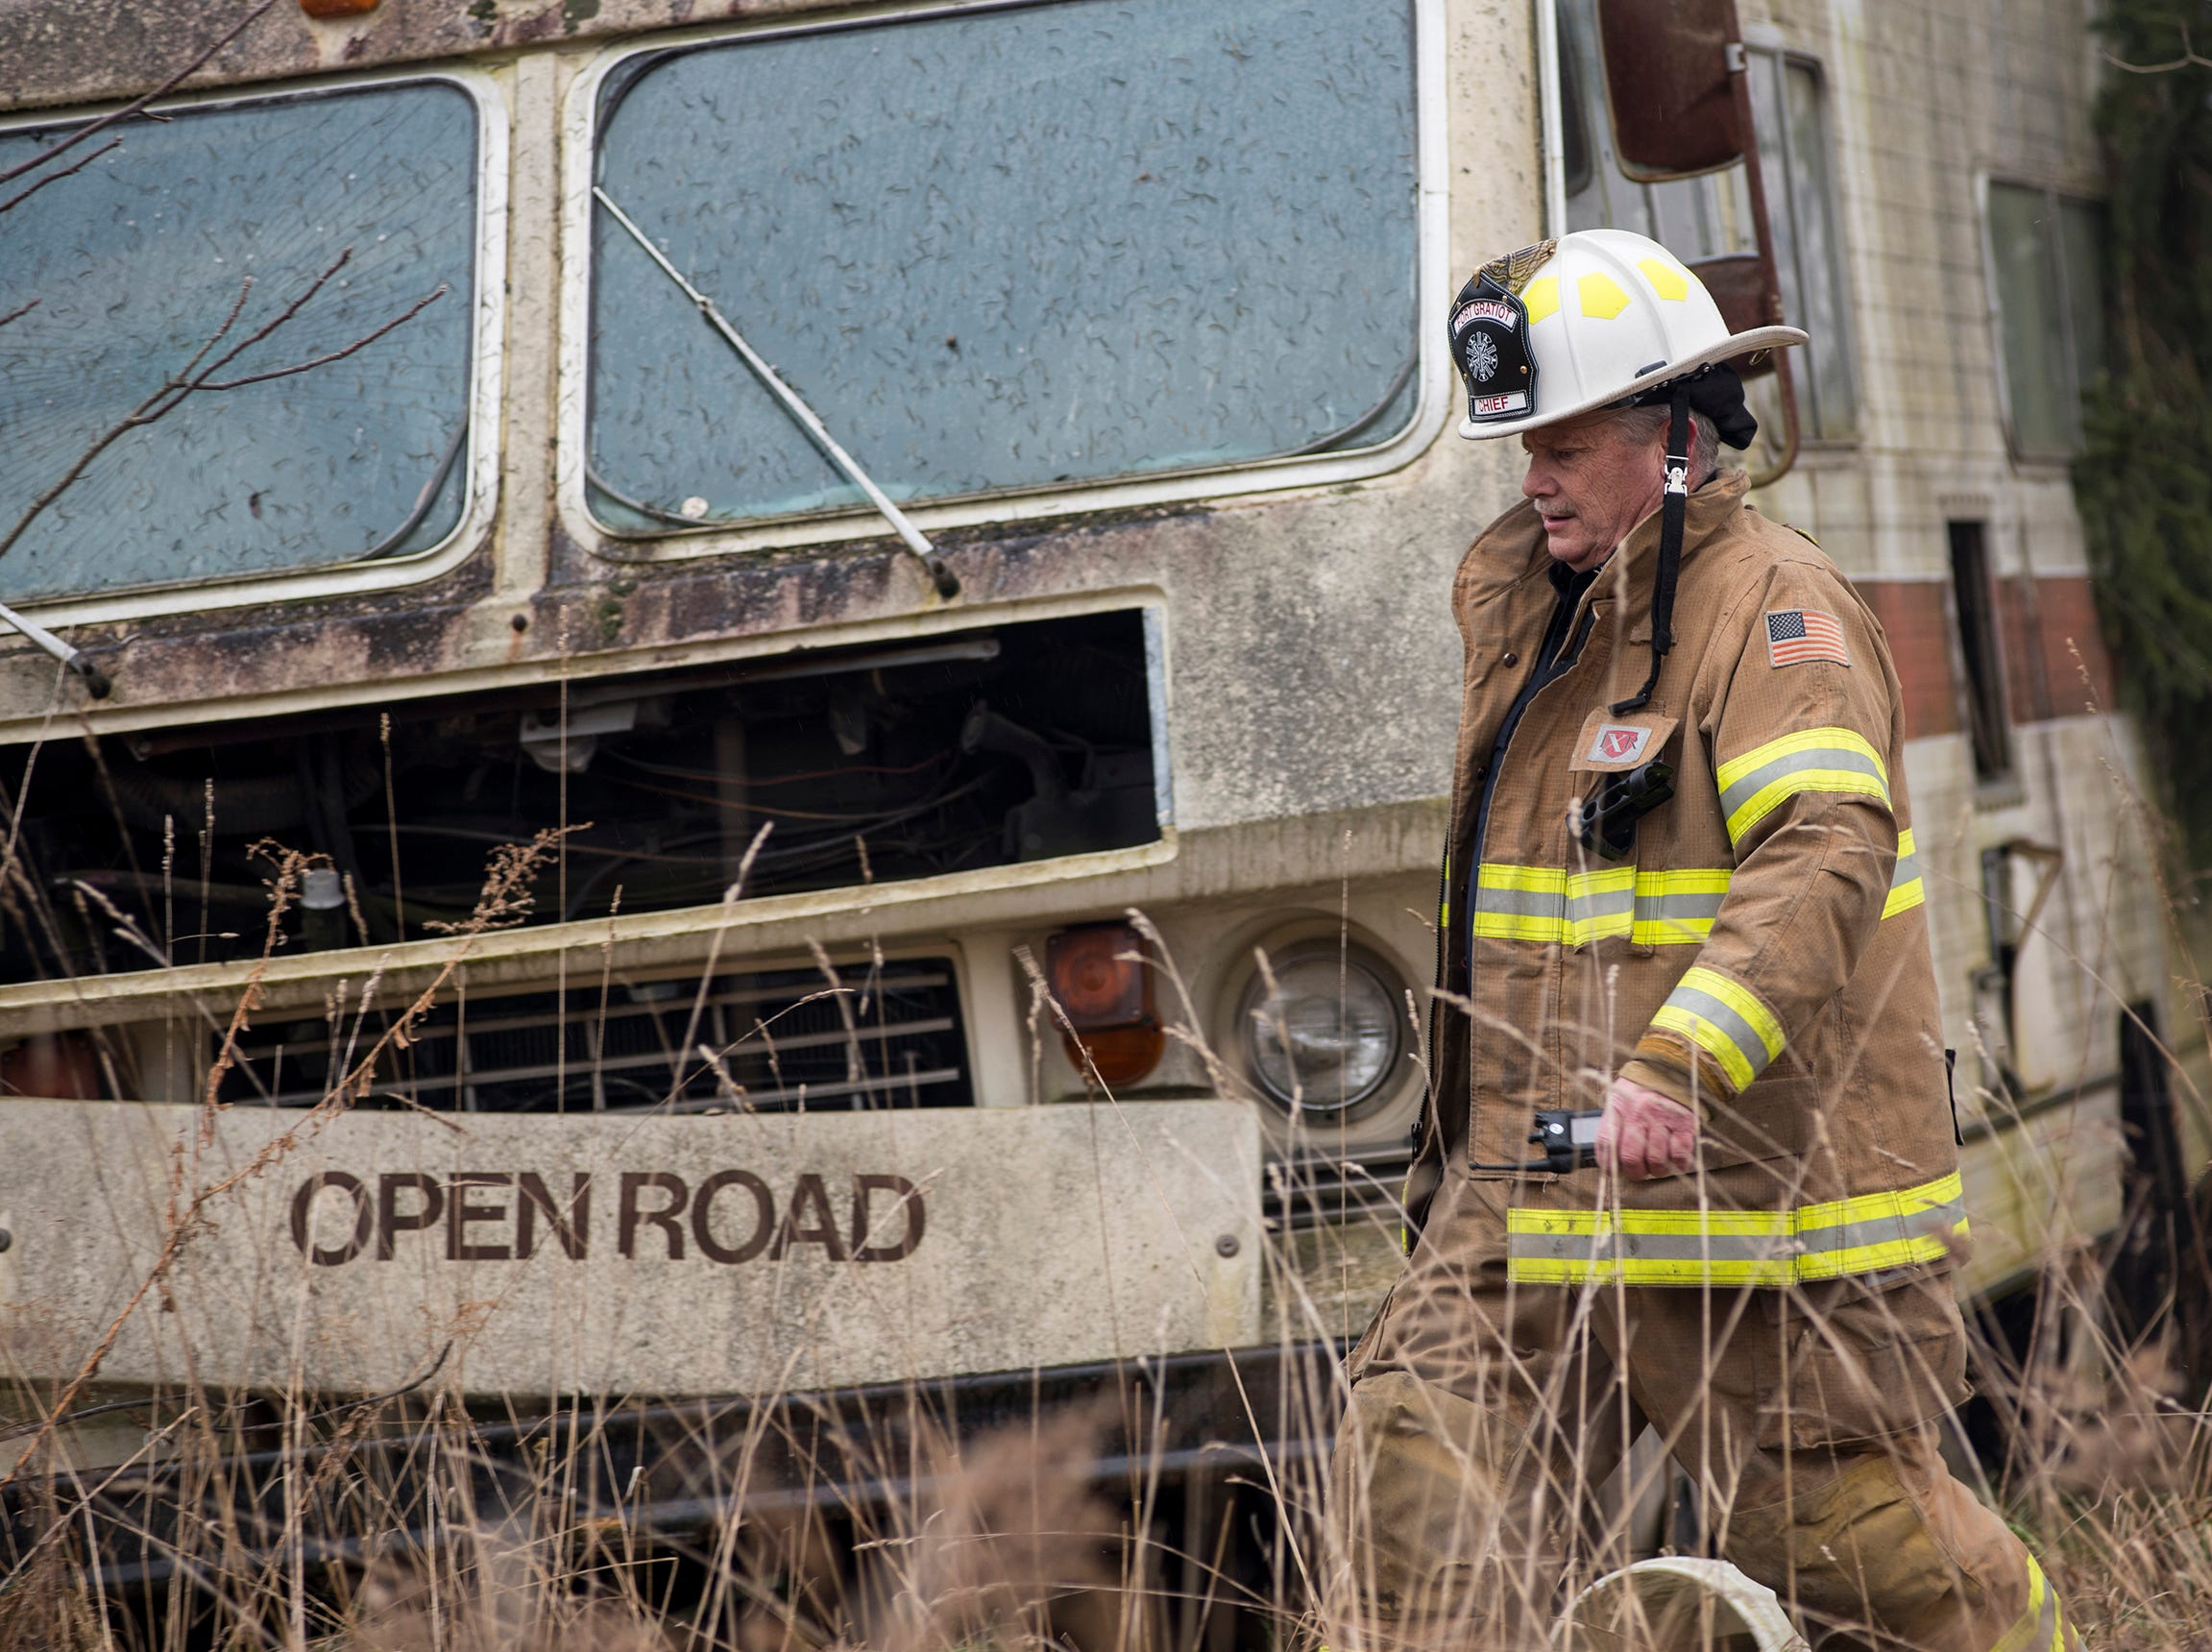 Fort Gratiot Fire Chief Pat Smith walks past an abandoned RV at the scene of a fire in the 3700 block of Brace Road in Fort Gratiot Thursday, Dec. 20, 2018. Firefighters received the call shortly before 1 p.m. The house was abandoned and the cause is under investigation.